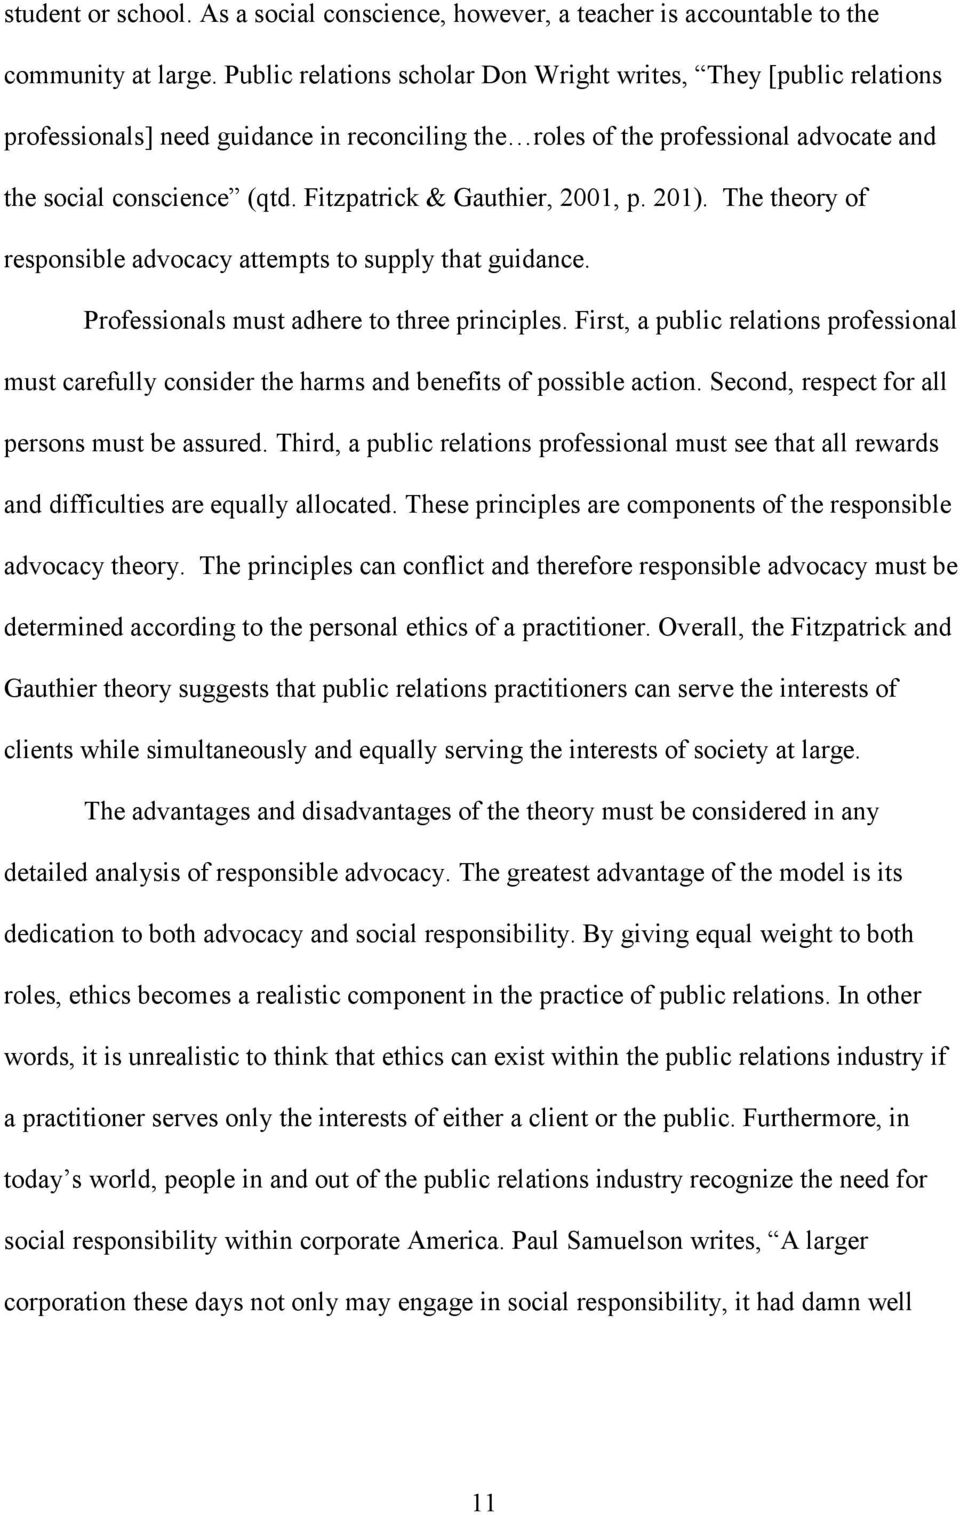 Fitzpatrick & Gauthier, 2001, p. 201). The theory of responsible advocacy attempts to supply that guidance. Professionals must adhere to three principles.